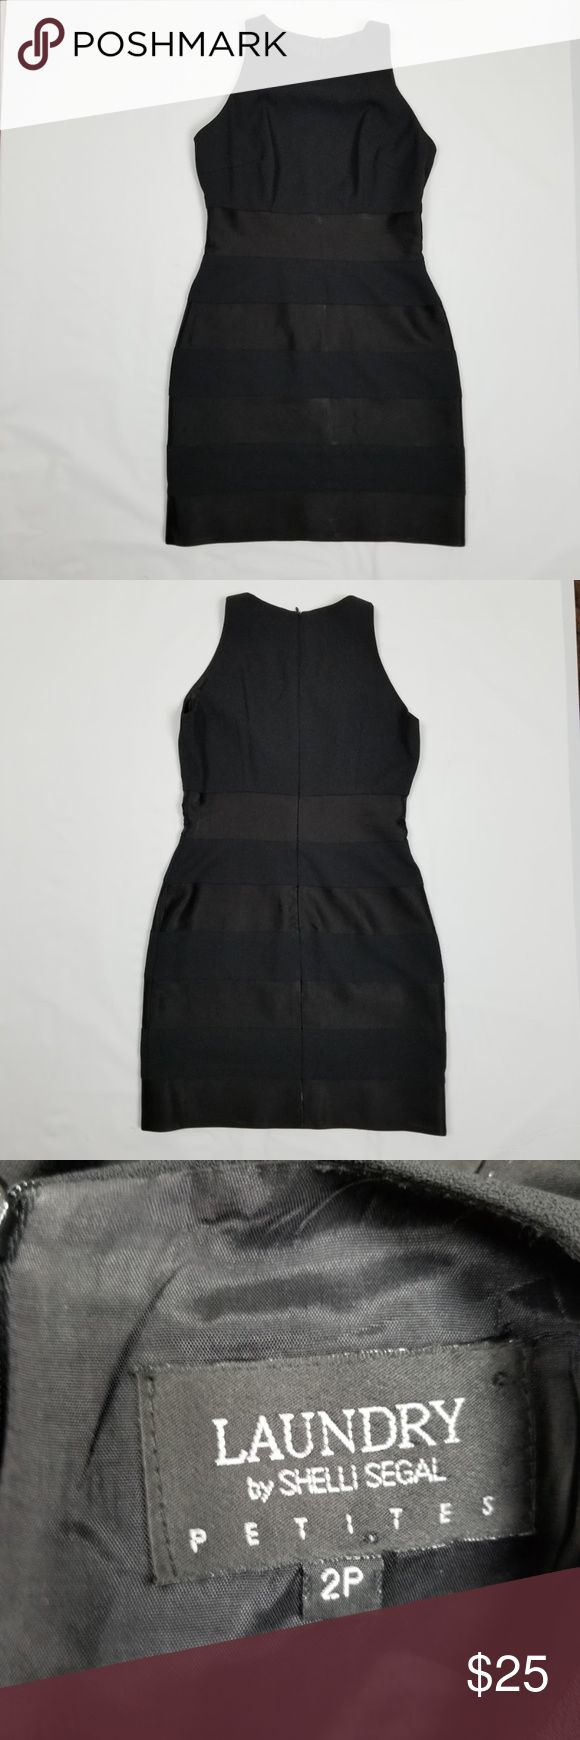 """Laundry by Shelli Segal Little Black Dress Laundry by Shelli Segal Little Black Cocktail Dress VTG 90's Sexy Mini Size 2P  Excellent Condition!  Simple and stylish, Fully lined with rear zip and hook closure. Dress has a fabric block mod, the  fabric does not stretch. Please see pictures for additional details.  Measurements (all approximate with garment laying flat)  Size: 2P Bust: 16.5"""" pit-pit Length: 30""""  Ship within 24 hours  Please note: All items are cross-posted, if they sell on…"""